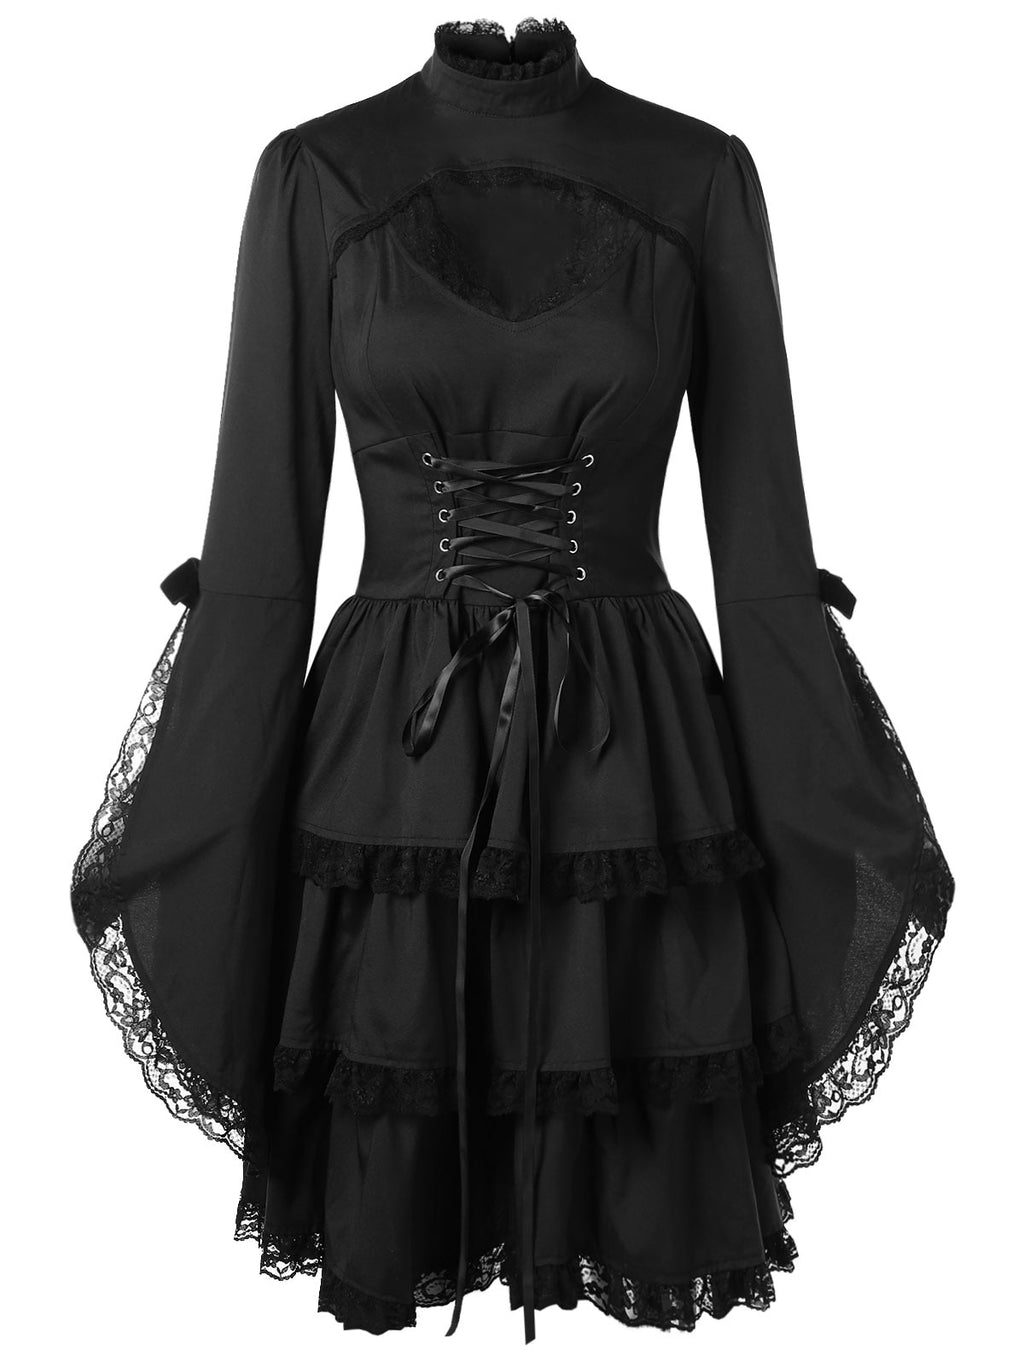 The Basic Witch Dress - Goth Mall